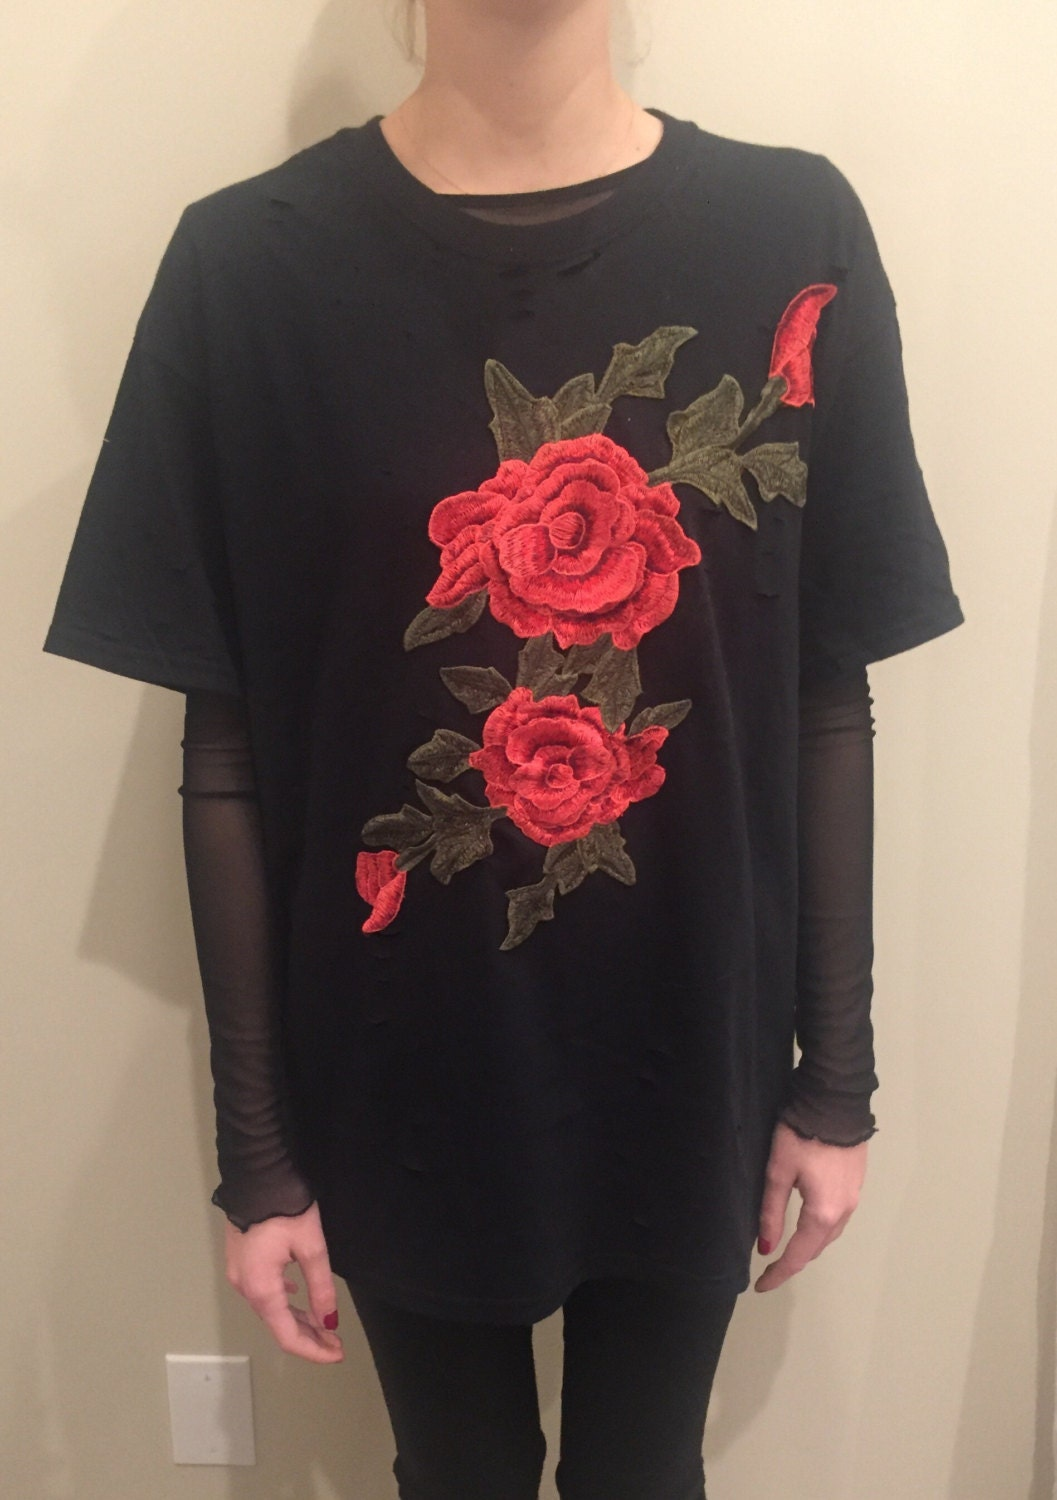 Lf inspired embroidered rose patch t shirt